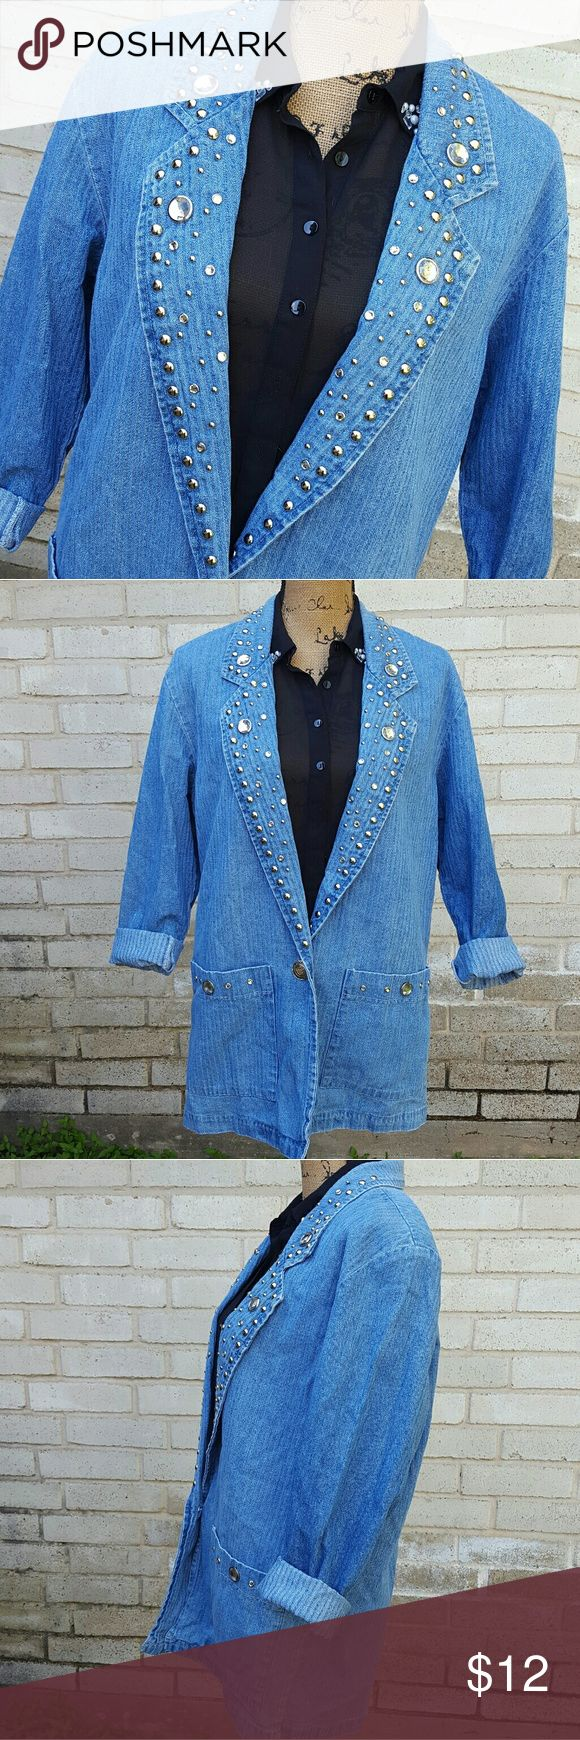 "Vintage Denim &Diamonds Funky Lapels Blazer Med Vintage denim blazer with studded and rhinestone embellished lapels. Brand is USA Bridge Sportswear Co. Made in USA. In great condition . Single button closure at waist on front.  Measurements :  Length 30 ""   20 ""across front laying flat buttoned #ravenkittystyle #vintage #denimanddiamonds #bling #rhinestones #studded #80s #80sblazer #medium #madeinusa #denimblazer #denimjacket Jackets & Coats Blazers"